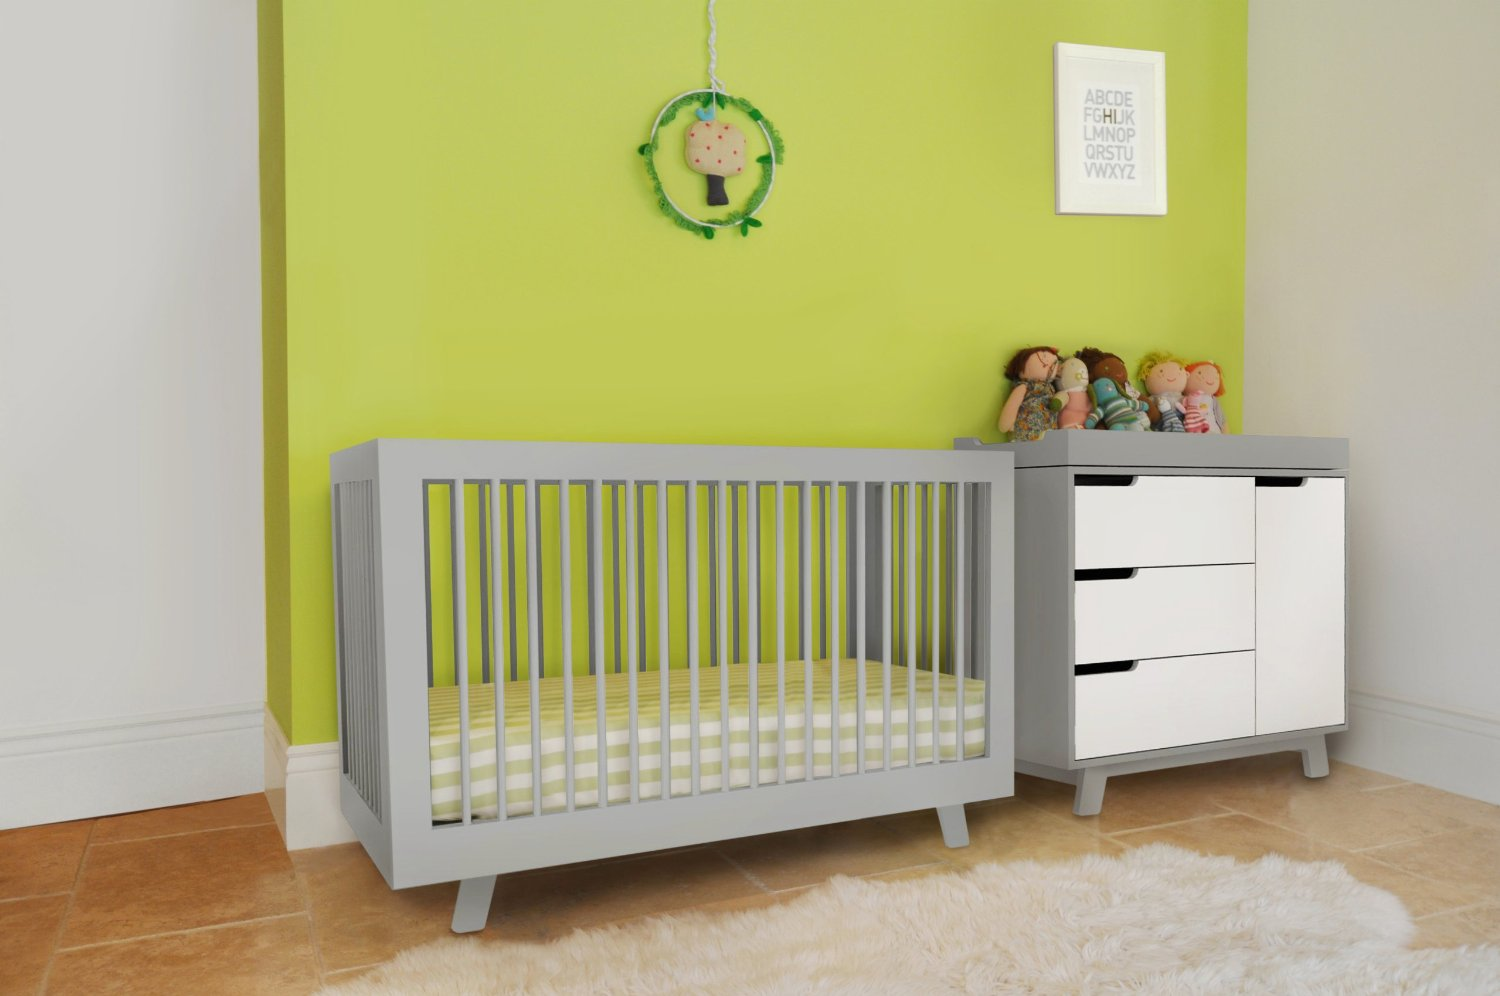 charming nursery decoration with grey crib with white bedding by babyletto on sandy brown ceramics floor matched with yellow wall plus white baseboard molding plus cabinets